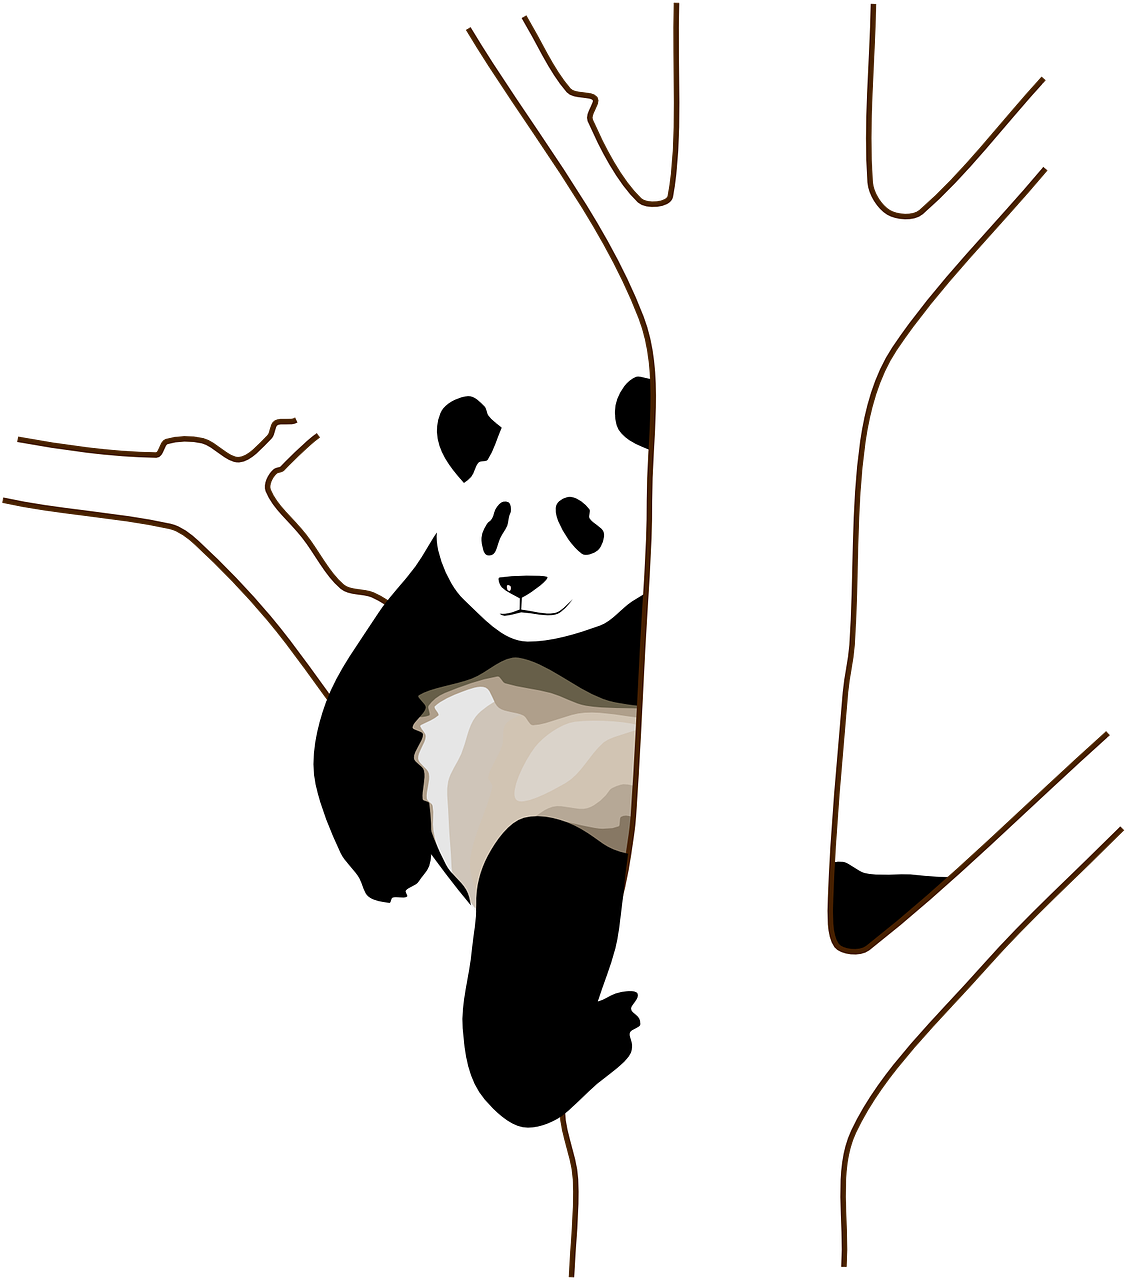 panda,tree,branch,sitting,climb,wild,bear,black and white,wildlife,animal,china,habitat,free vector graphics,free pictures, free photos, free images, royalty free, free illustrations, public domain